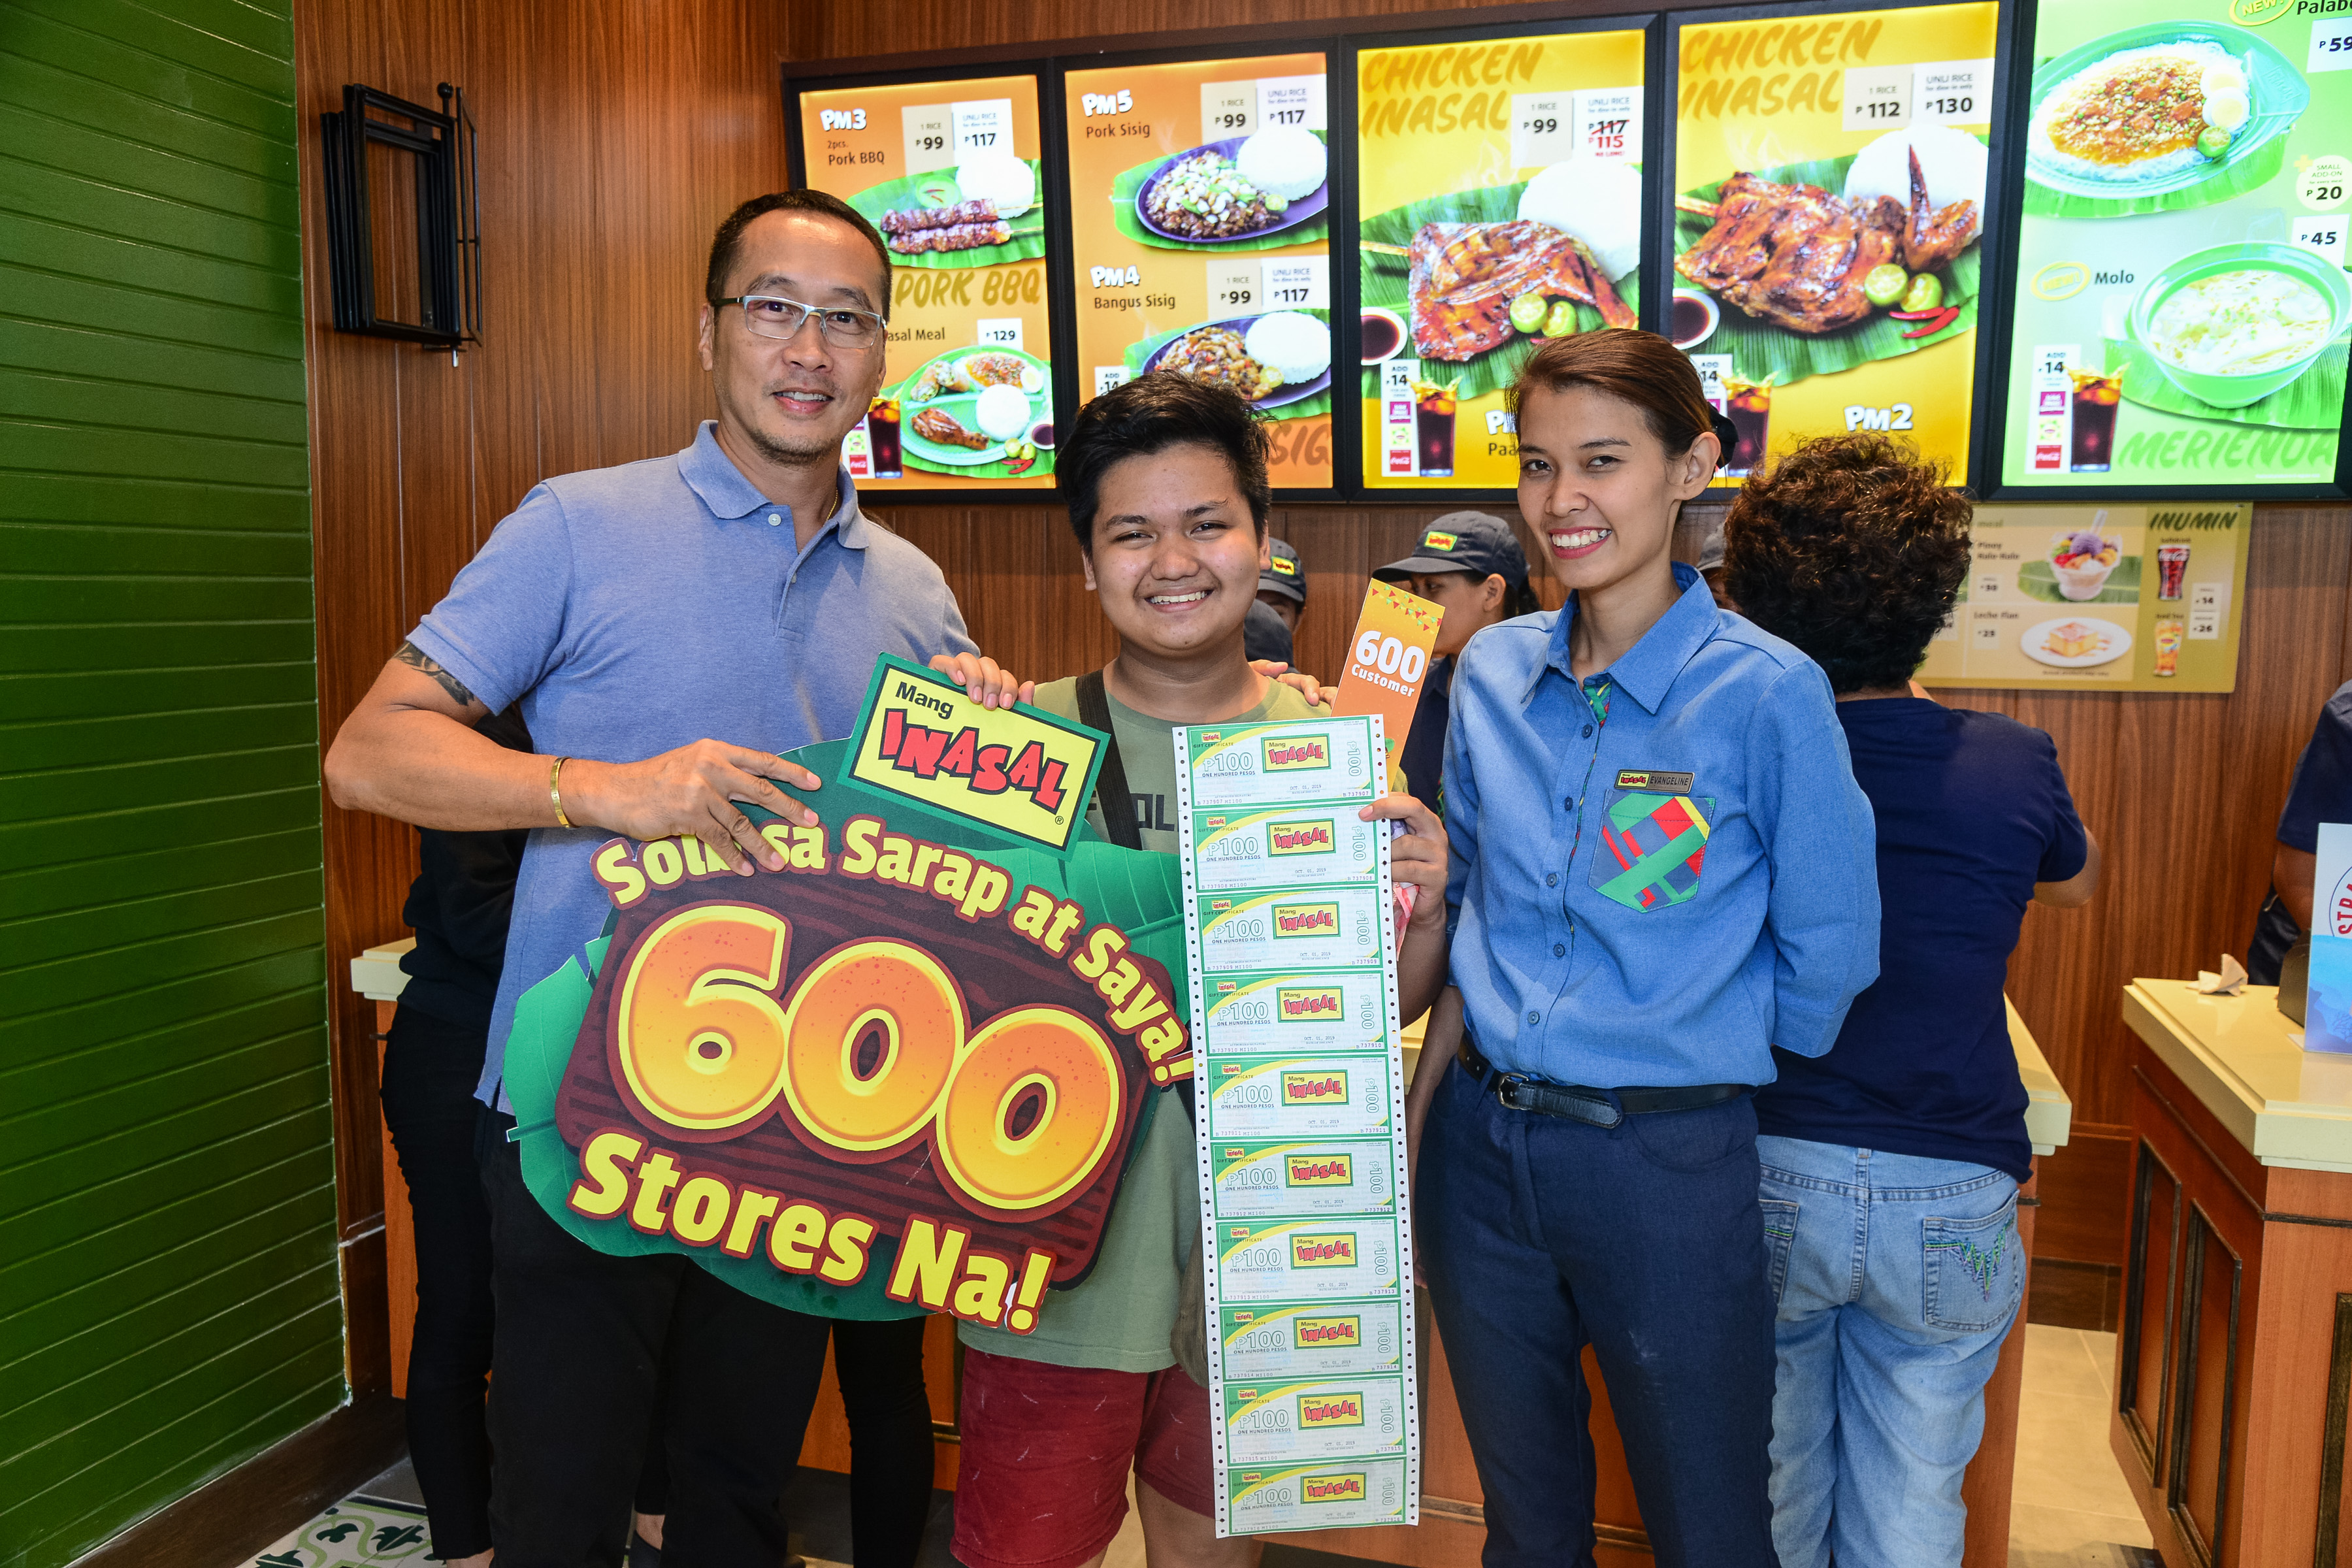 The lucky 600th customer of Mang Inasal beams with the Managing Director Eugene Reyes (left) and Restaurant Manager Evangeline Ebora (right)